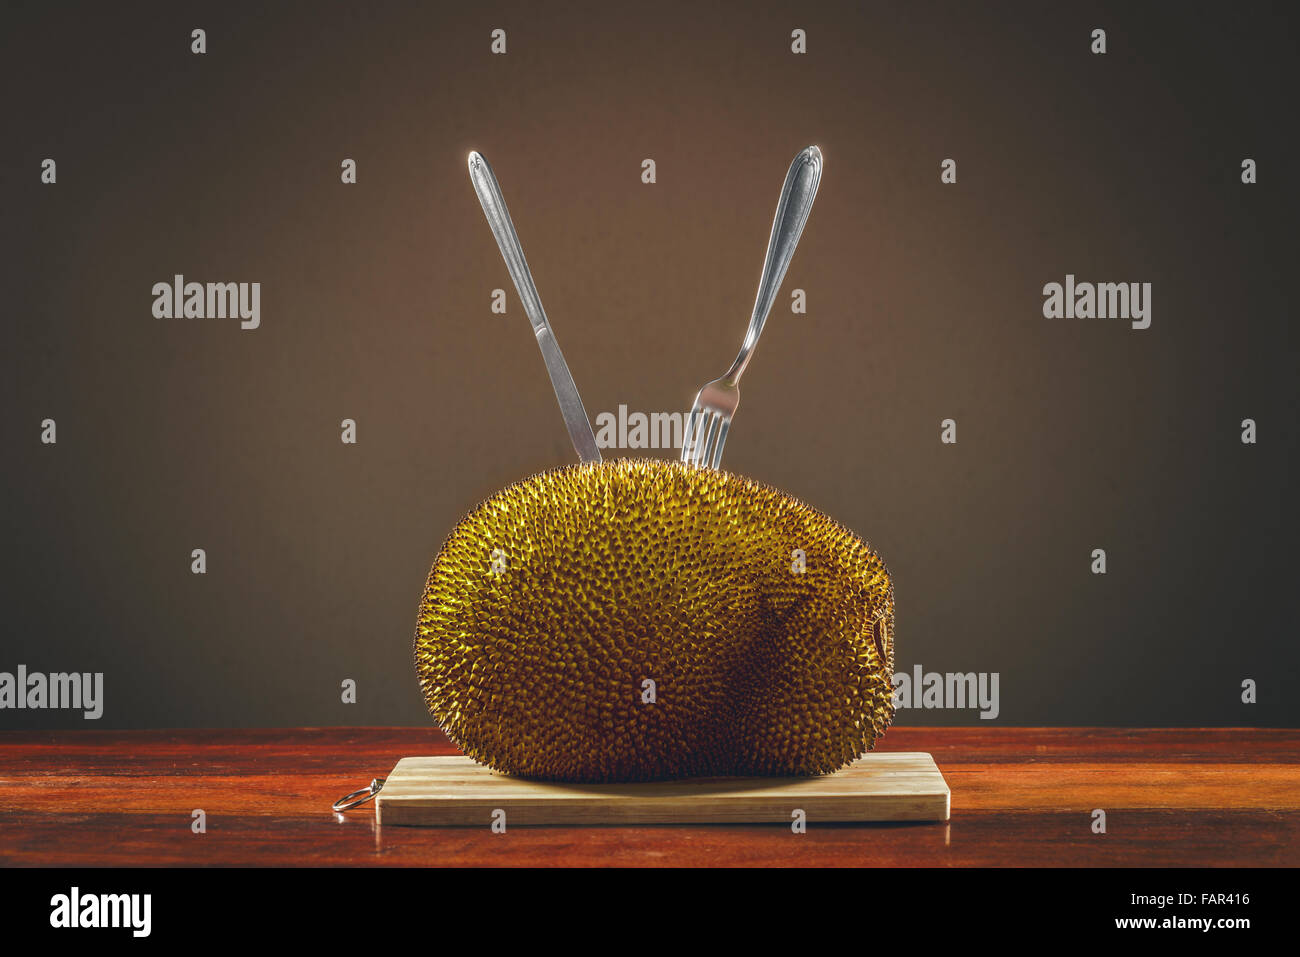 Fruit jackfruit on the table and cutlery stuck on it. - Stock Image